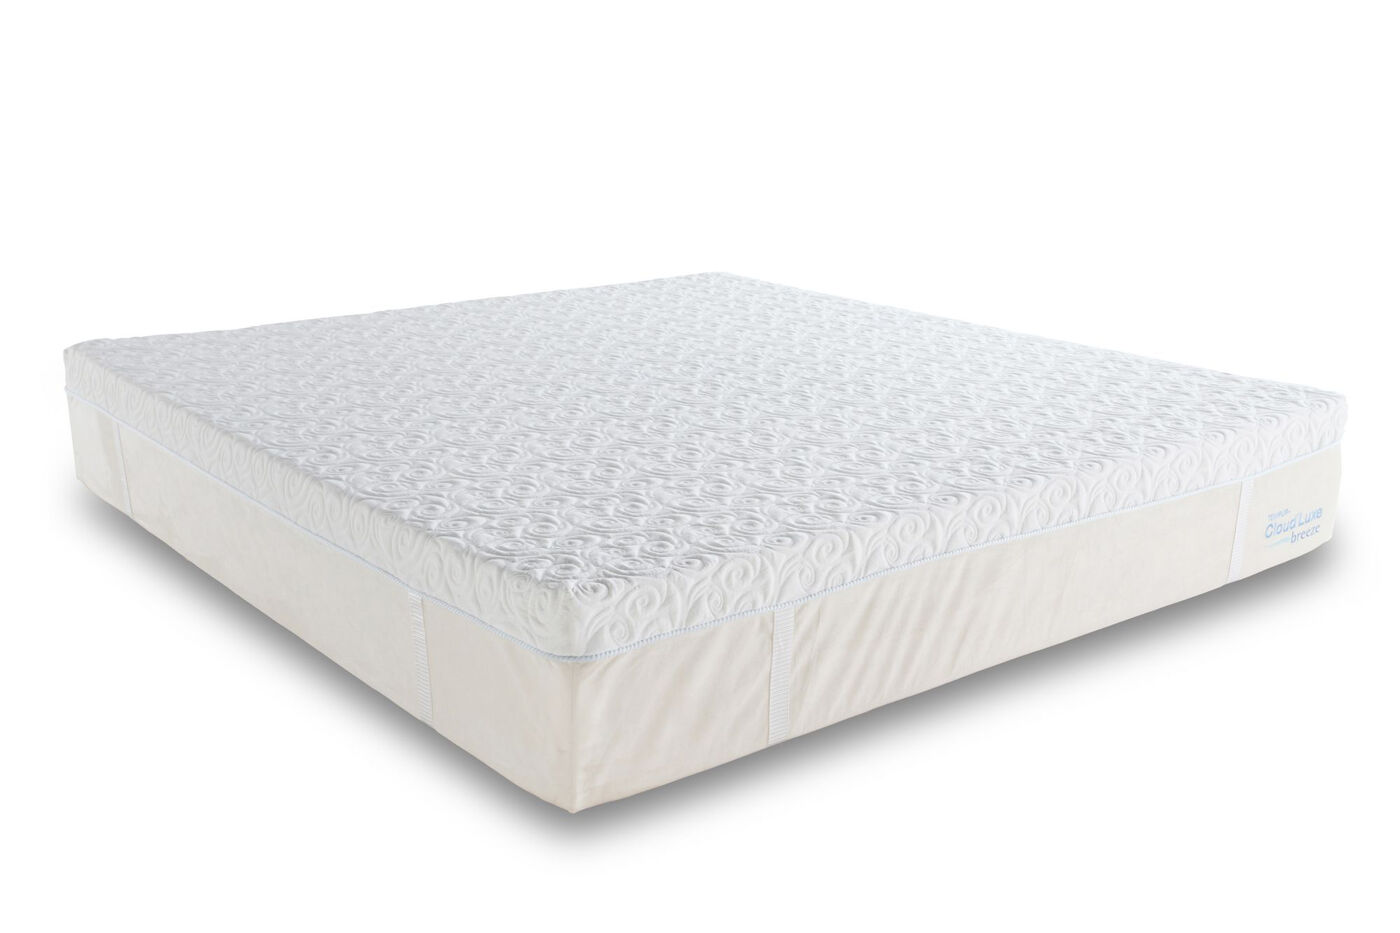 Tempur Pedic Tempur Cloud Luxe Breeze Mattress Mathis